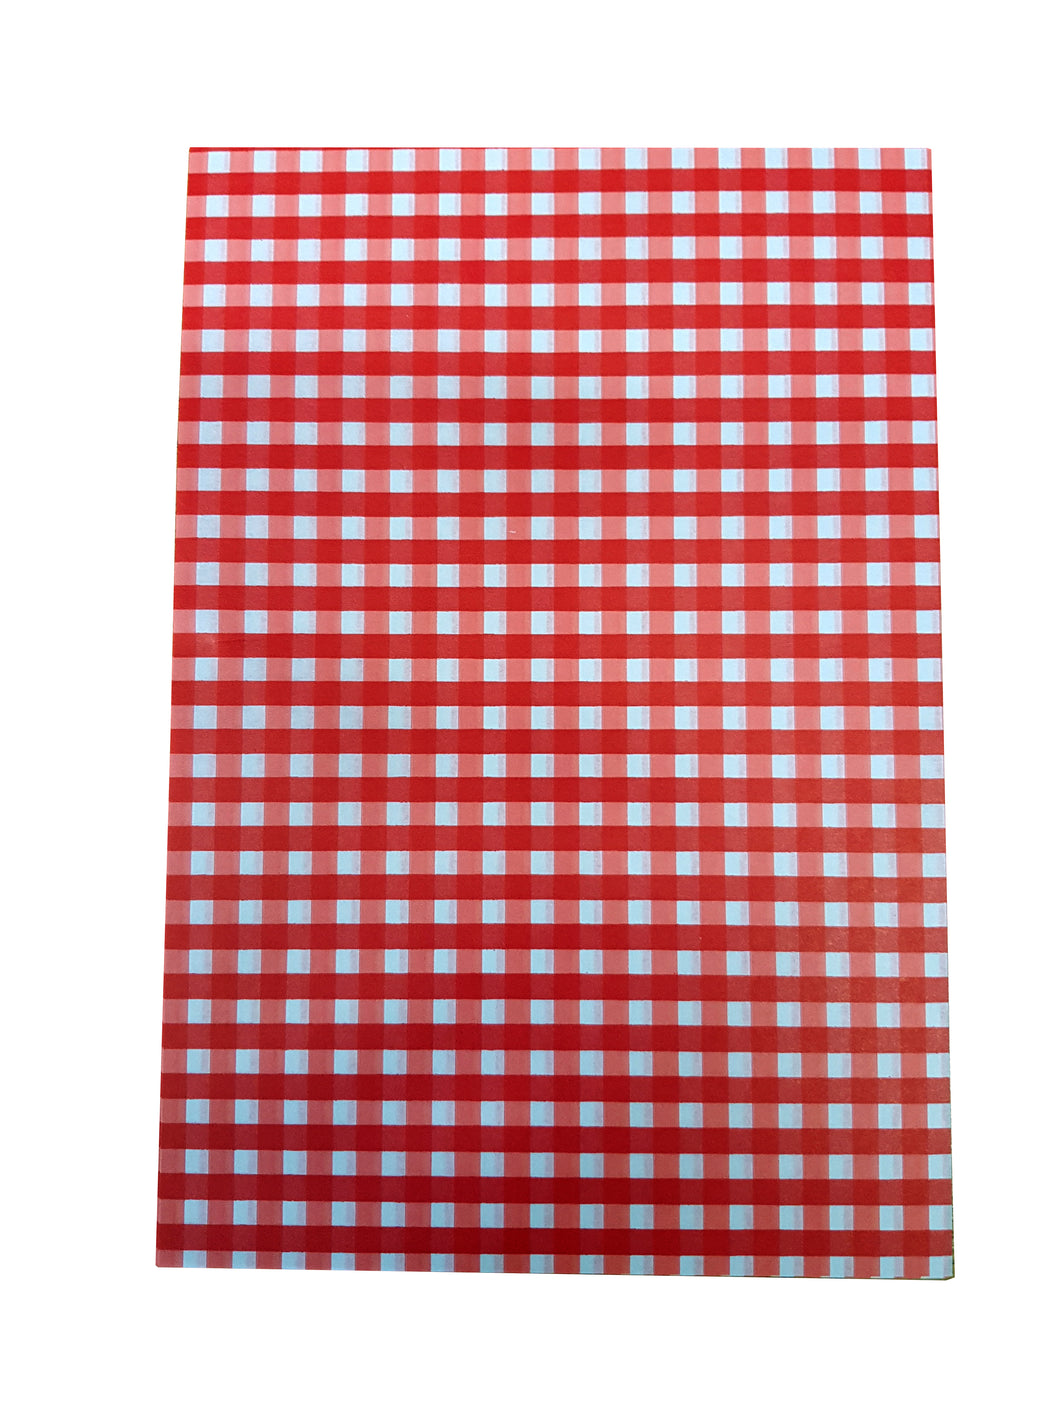 Red Gingham Greaseproof Sheets, Chip & Tray Liners. packs of 1,000